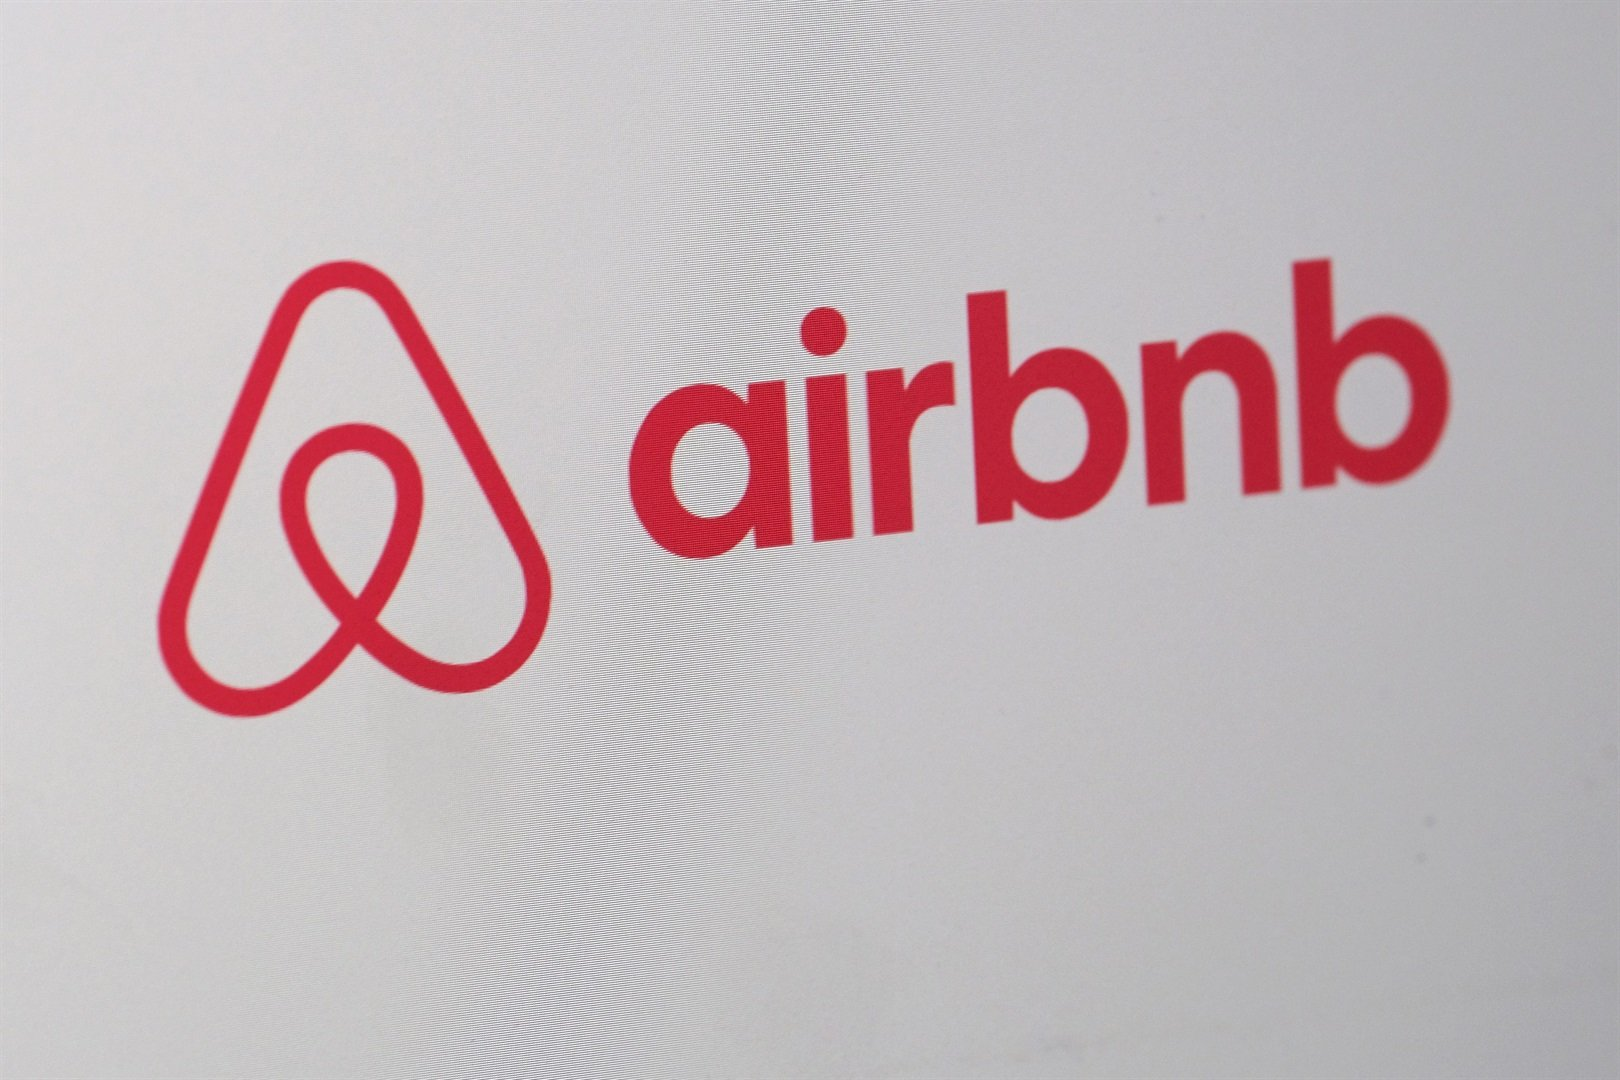 Airbnb said rental bookings jumped 52% in Q1 from the same quarter last year as the company anticipates a post-pandemic travel boom.